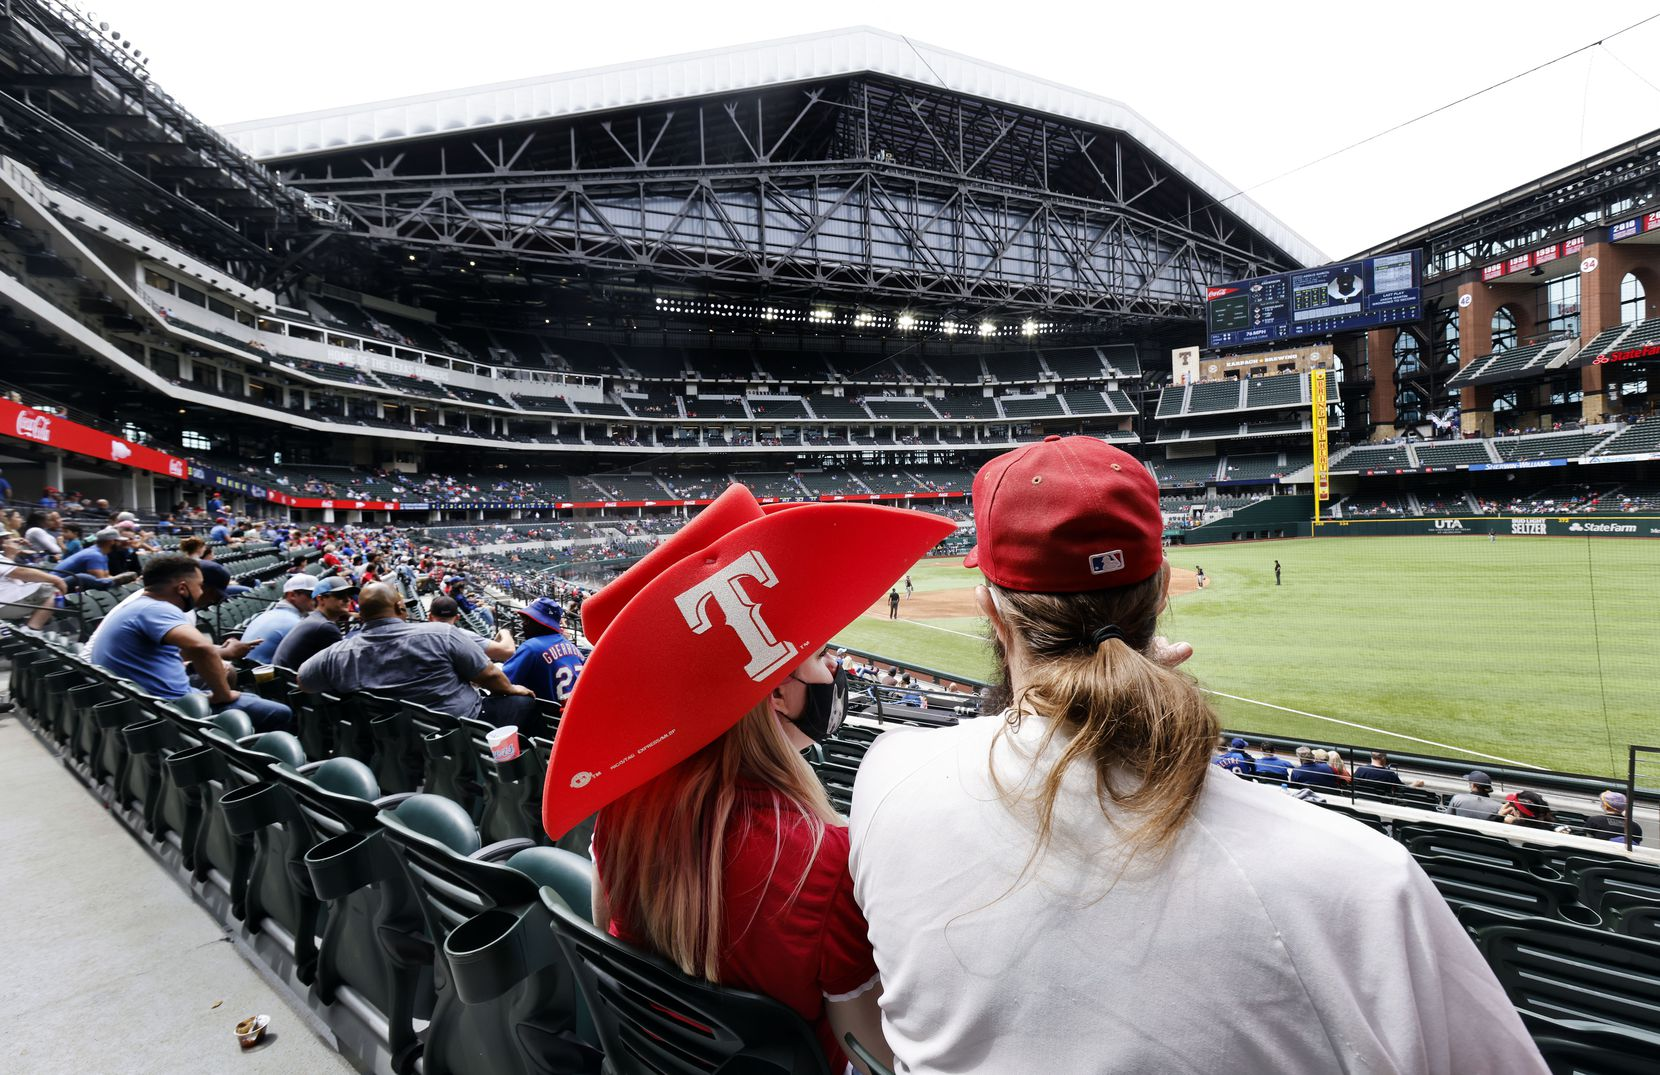 Texas Rangers fans take in an afternoon exhibition baseball game at Globe Life Field in Arlington, Texas. The Rangers were playing the Milwaukee Brewers, Tuesday, March 30, 2021. (Tom Fox/The Dallas Morning News)